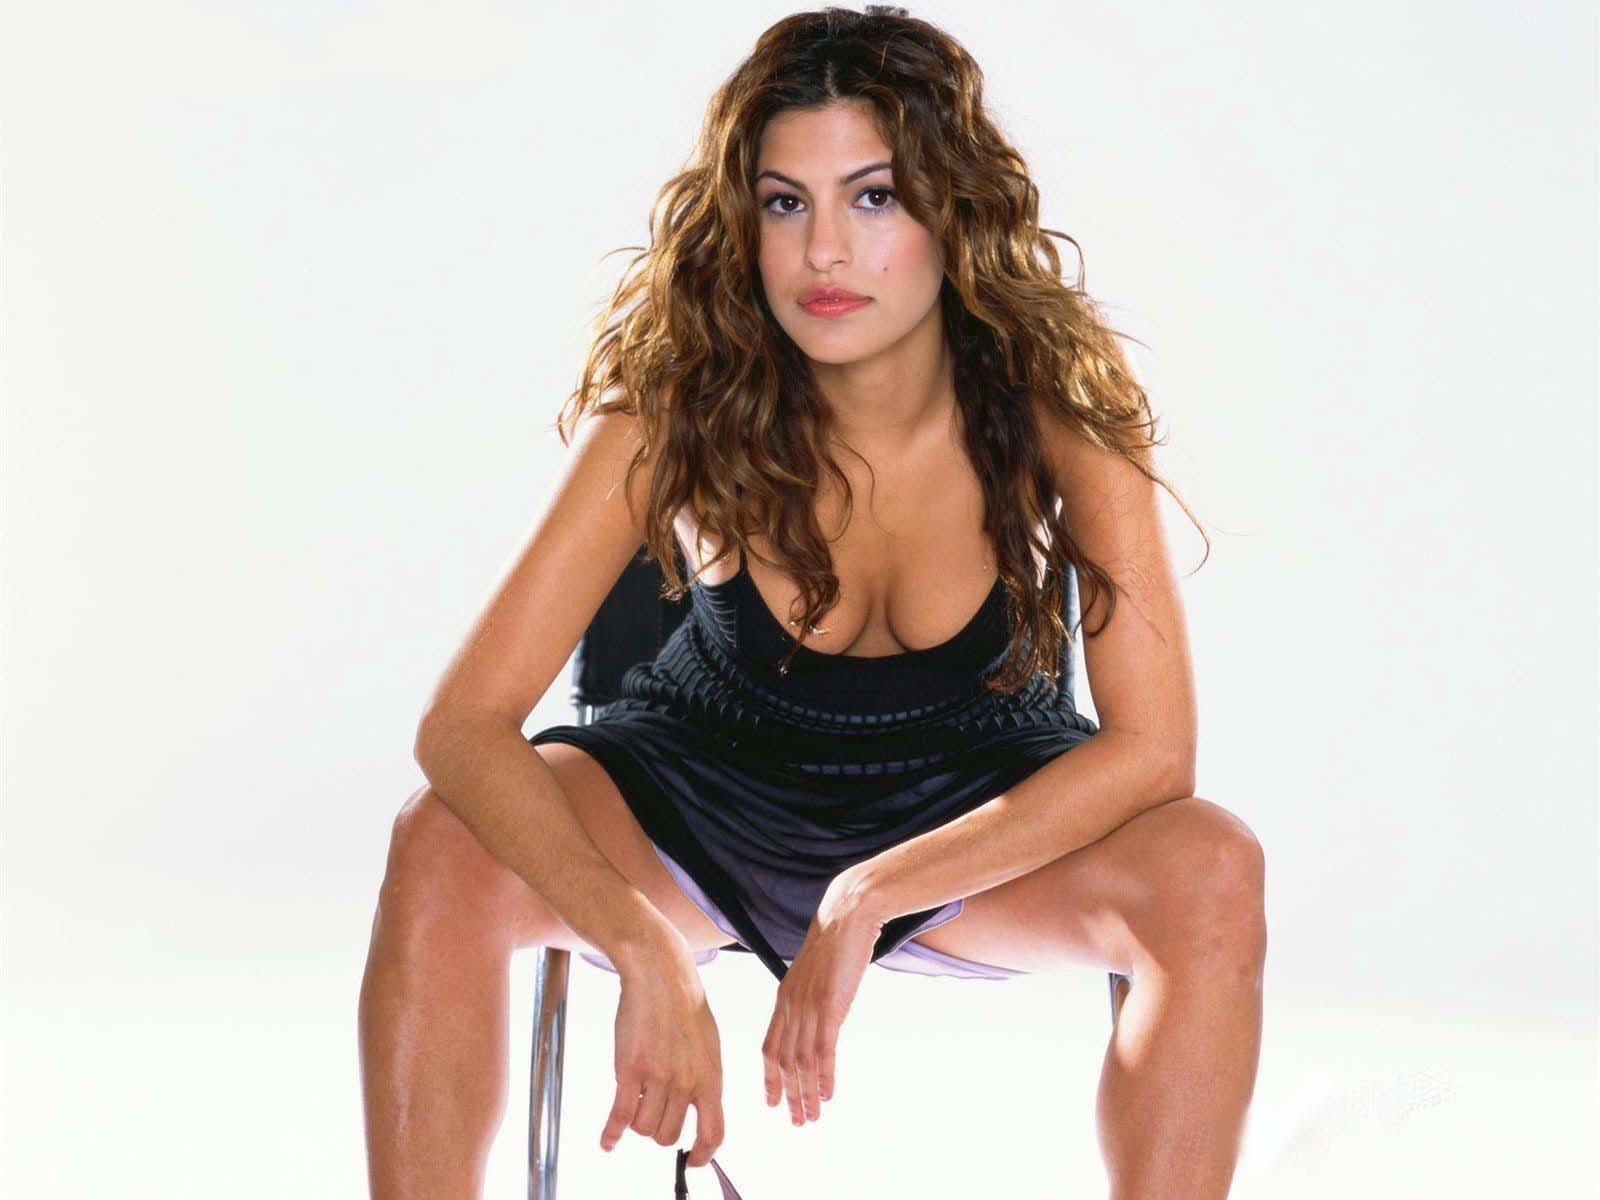 Eva mendes hot nice high defination pictures